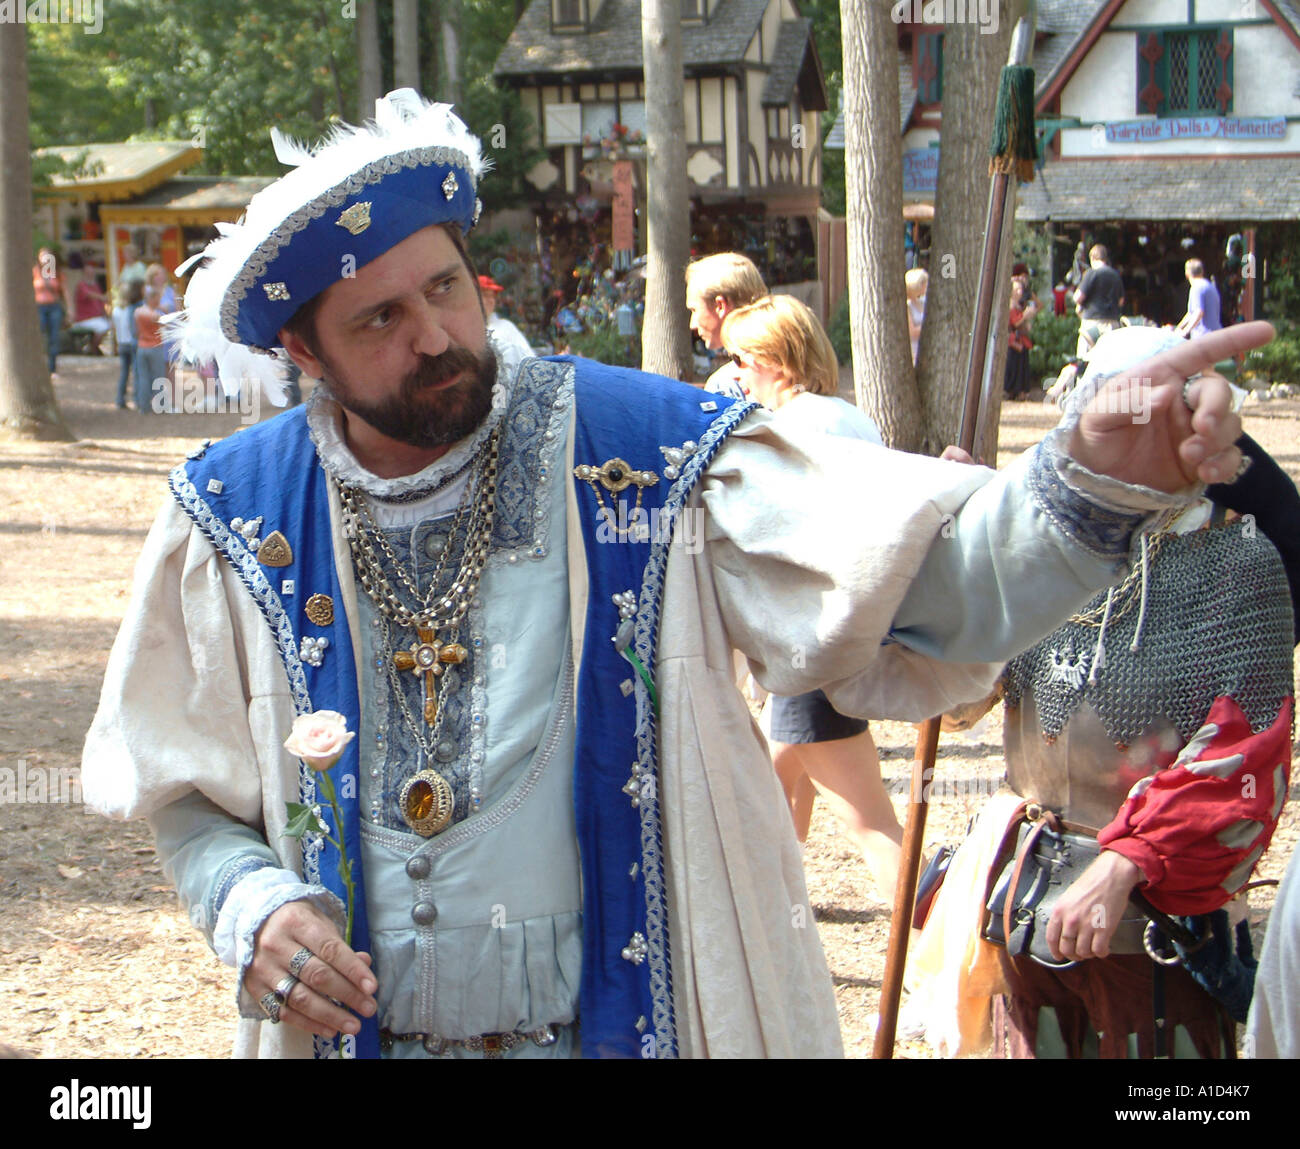 man playing King Henry at the Renaissance Festival in Crownsville Md - Stock Image